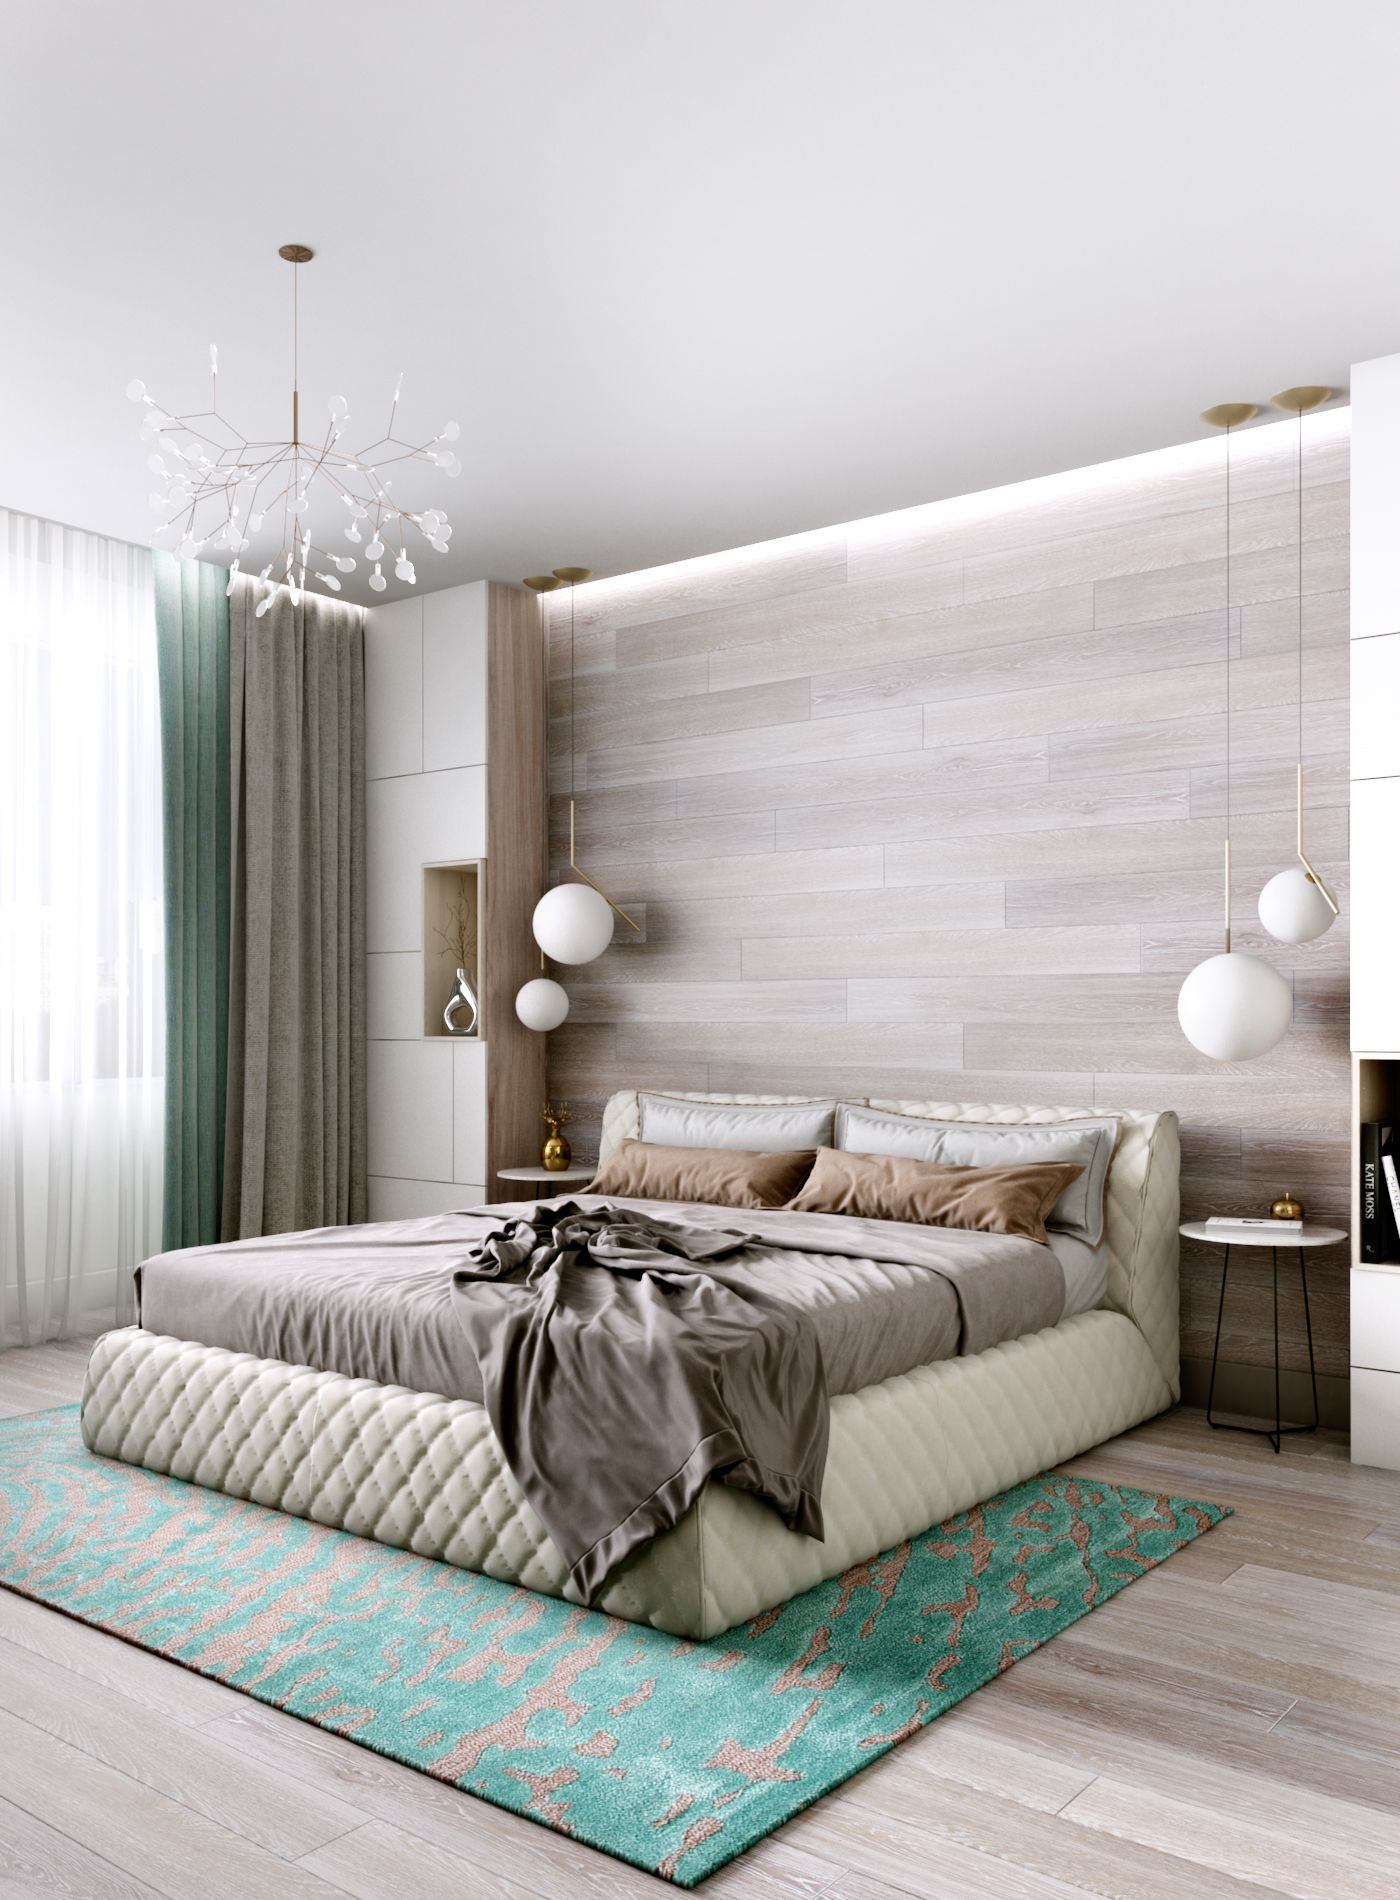 bedroom on Behance bedroom on Behance